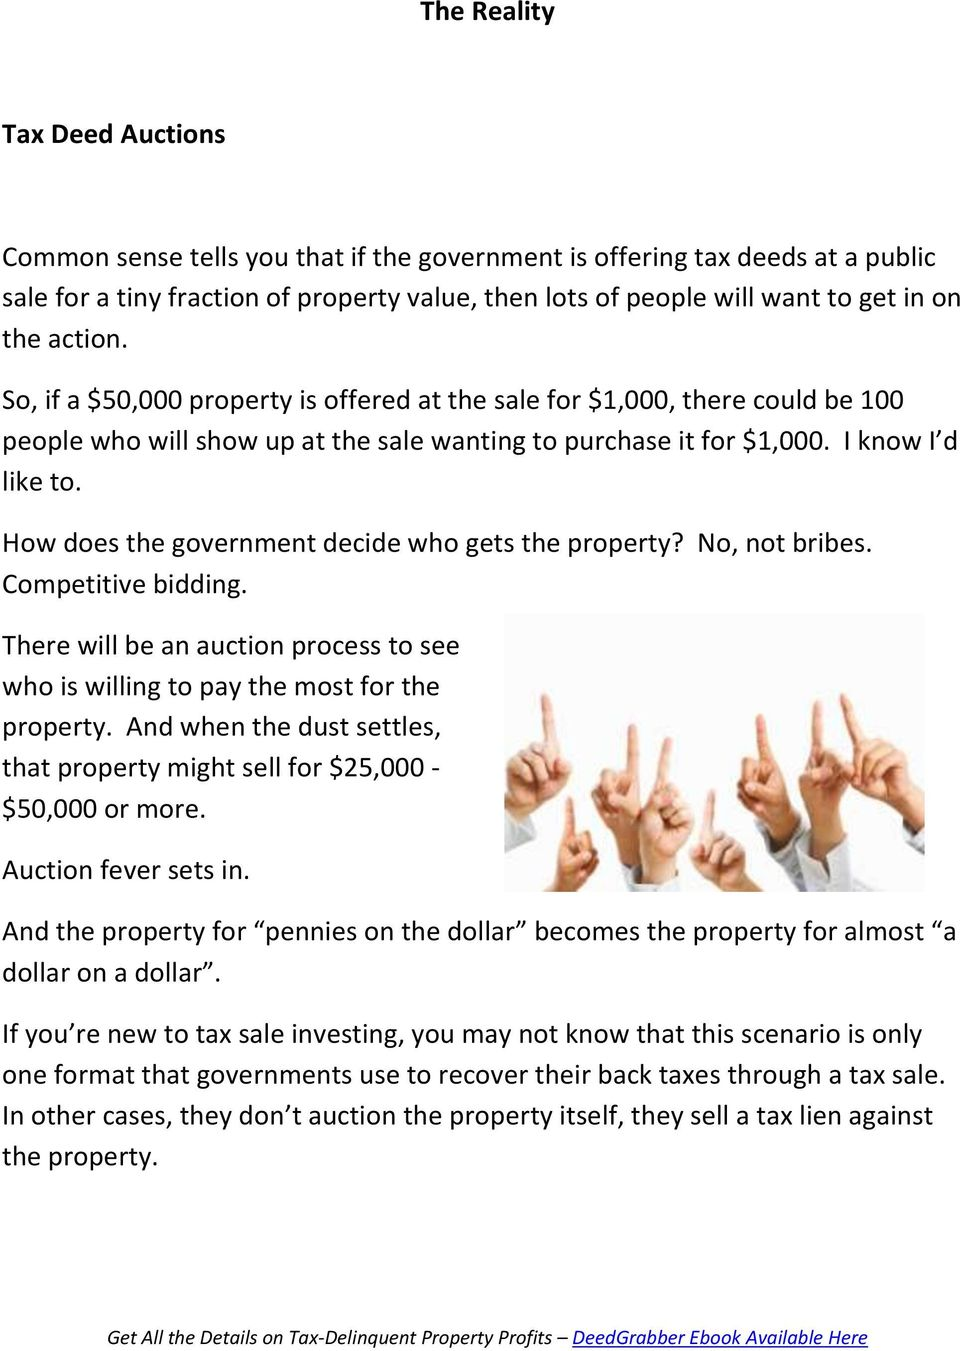 How does the government decide who gets the property? No, not bribes. Competitive bidding. There will be an auction process to see who is willing to pay the most for the property.